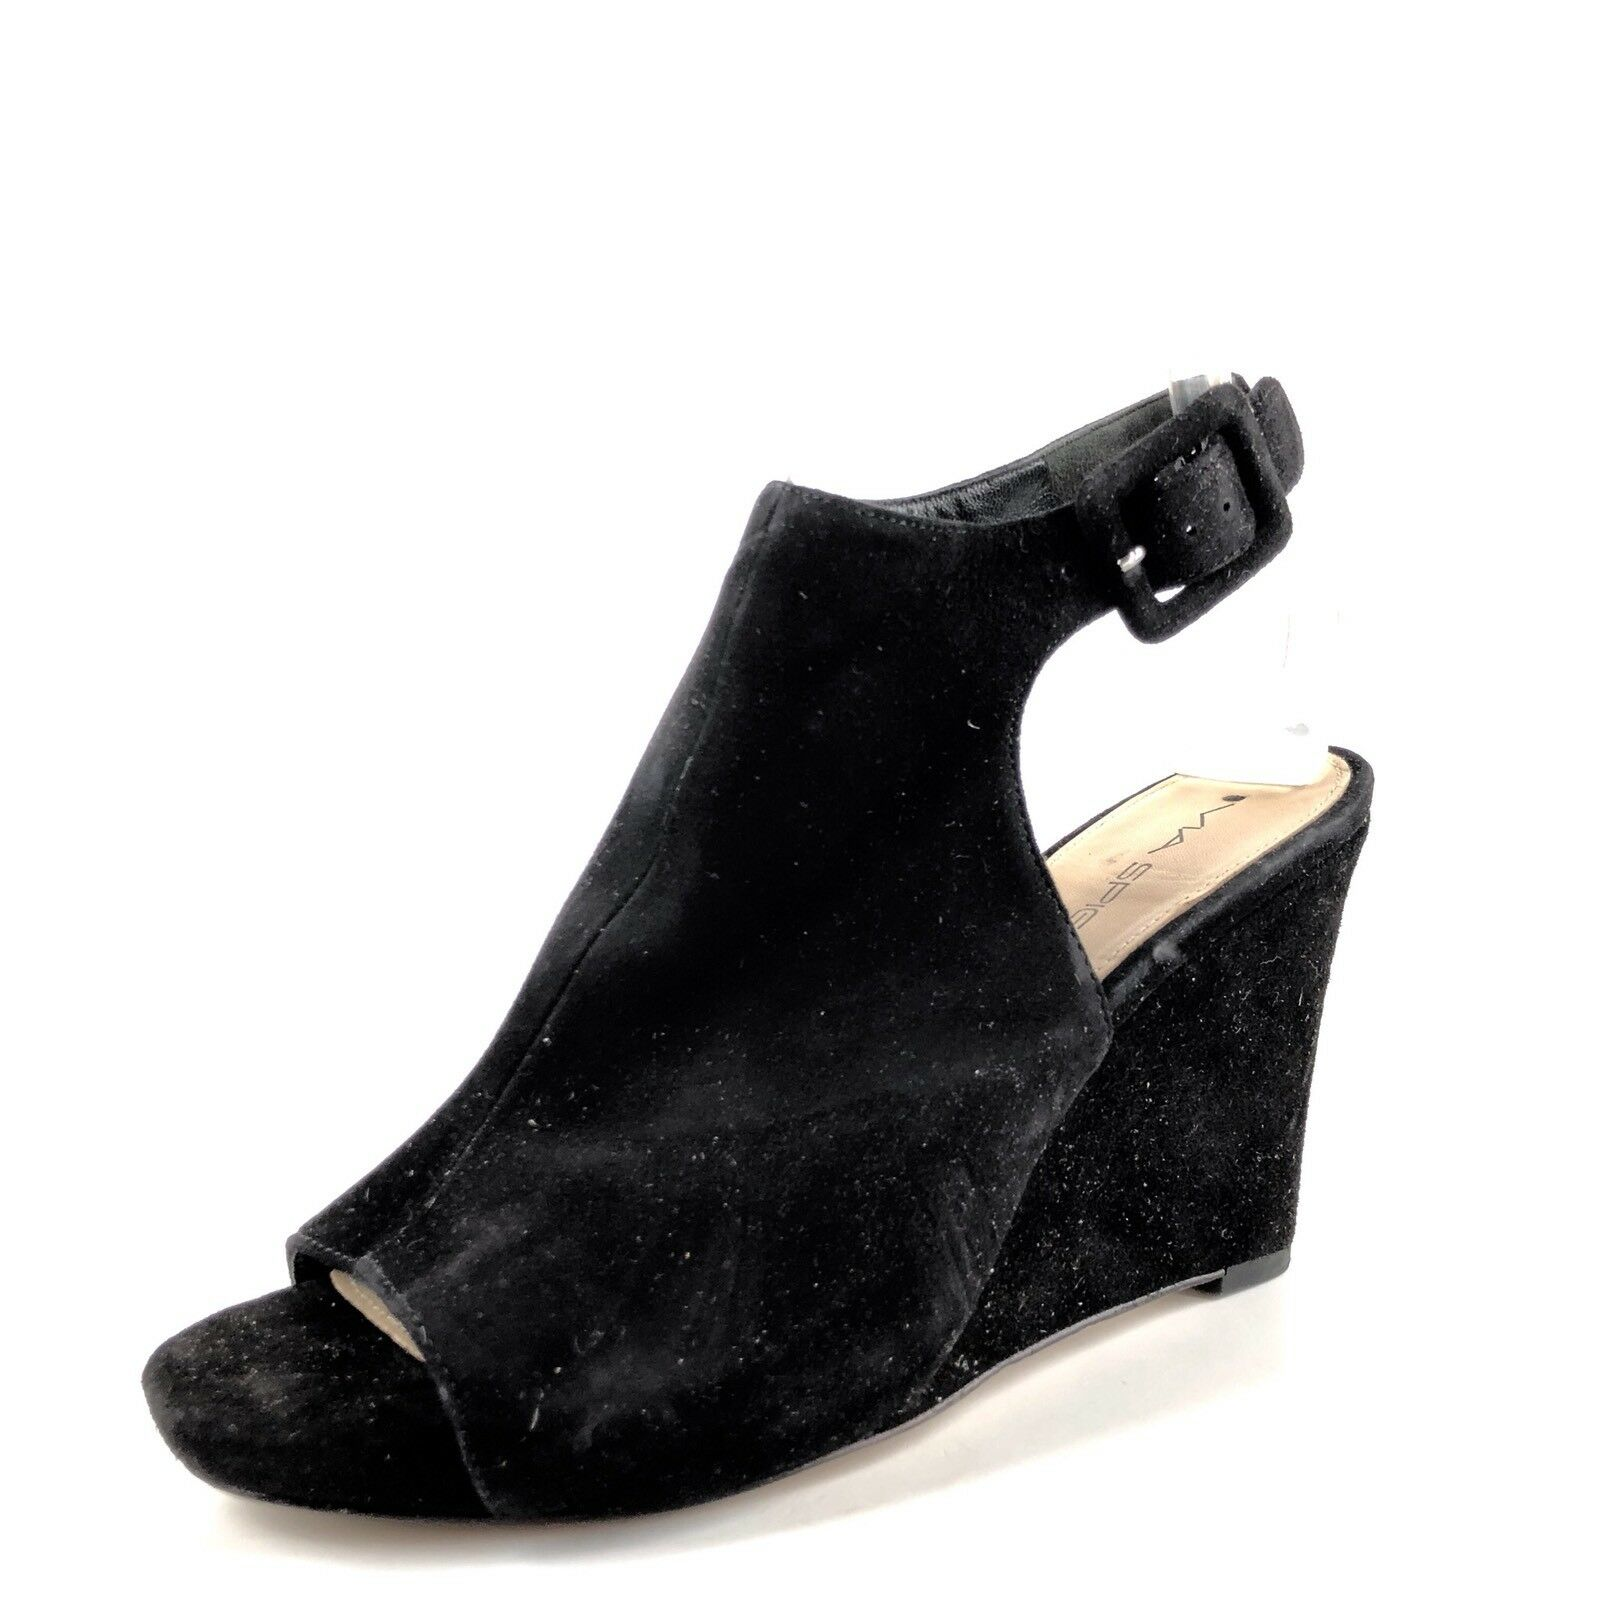 Via Spiga Donna  nero Suede Slingback Slingback Slingback Open Toe Wedge Sandals Dimensione 6.5 M  251e11